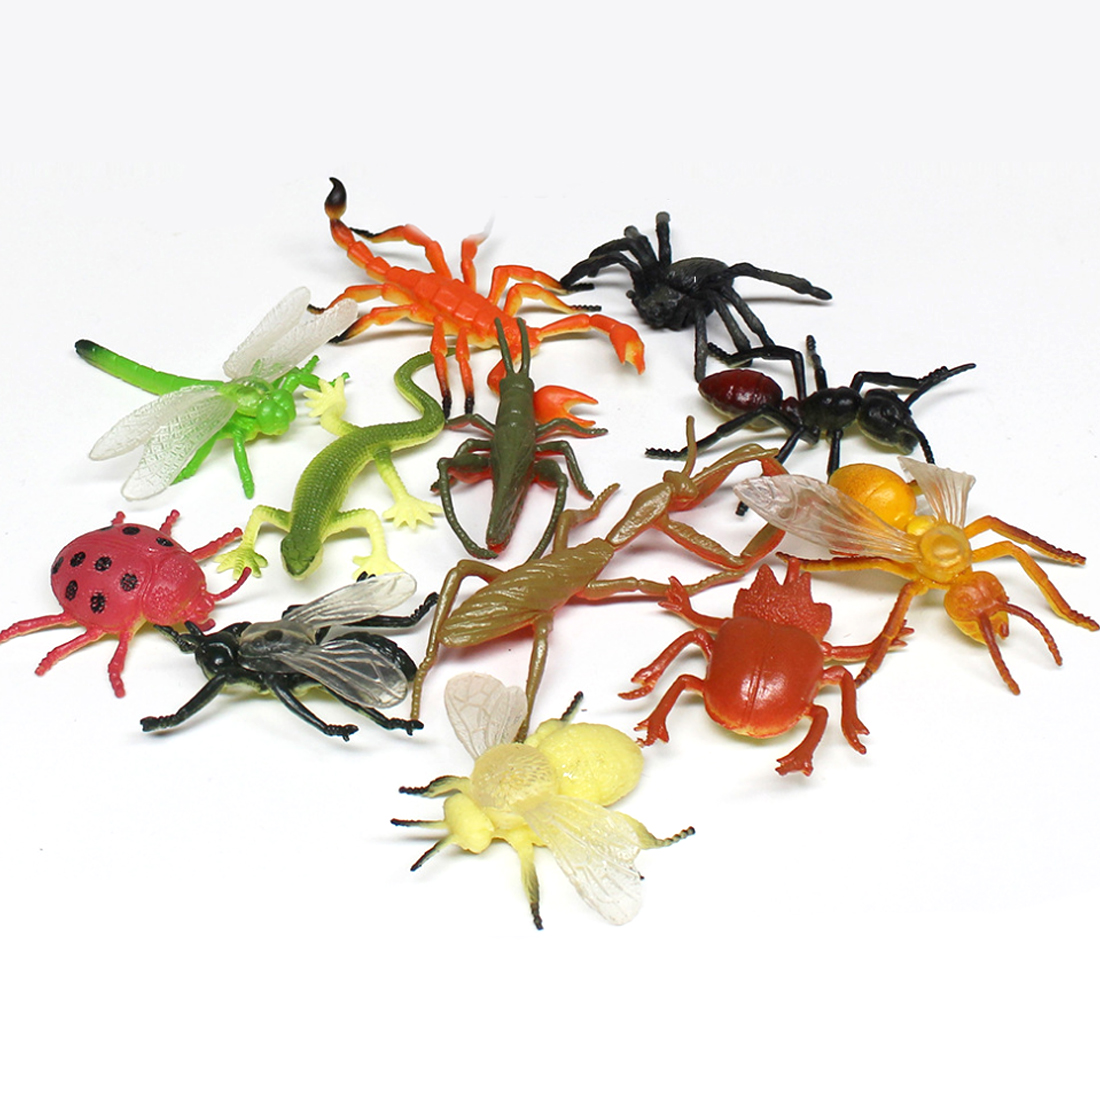 12pcs Plastic Simulation Bee Dragonfly Spider Toys Insect Ladybird Locust Lizard Models Figures Figurines Set Educational Toys